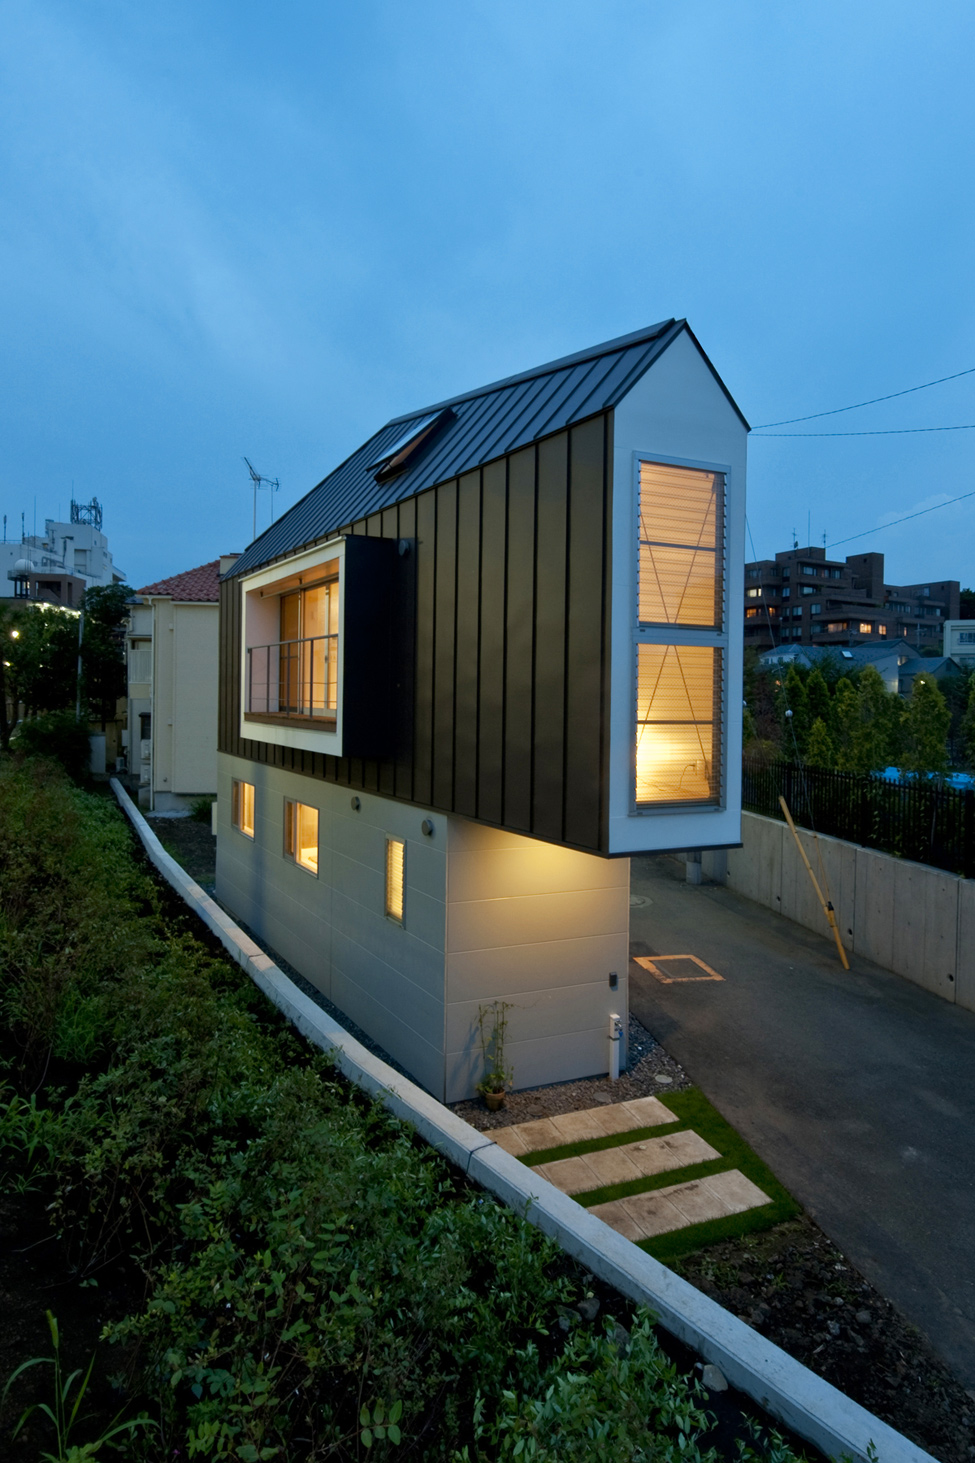 House in Horinouchi